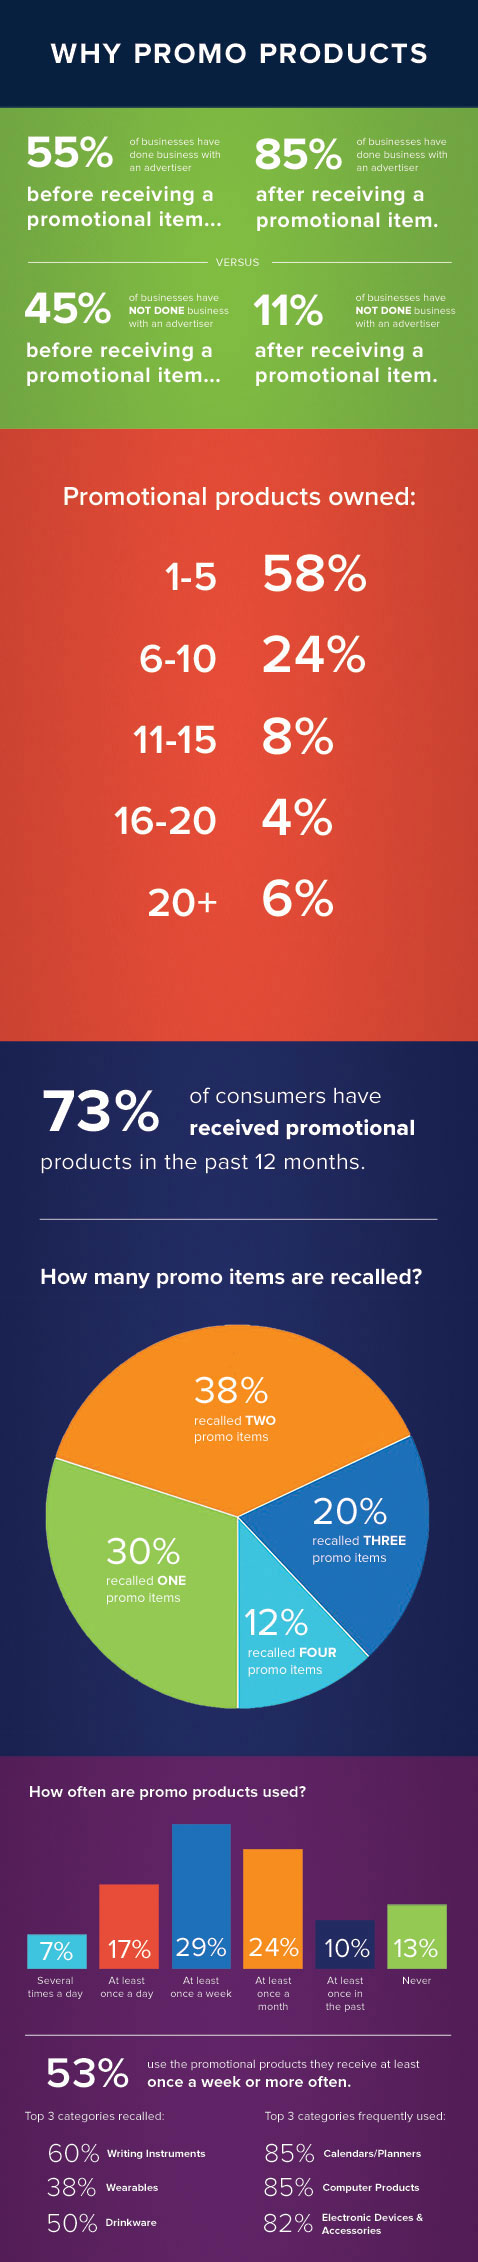 Why Promo Products Infographic